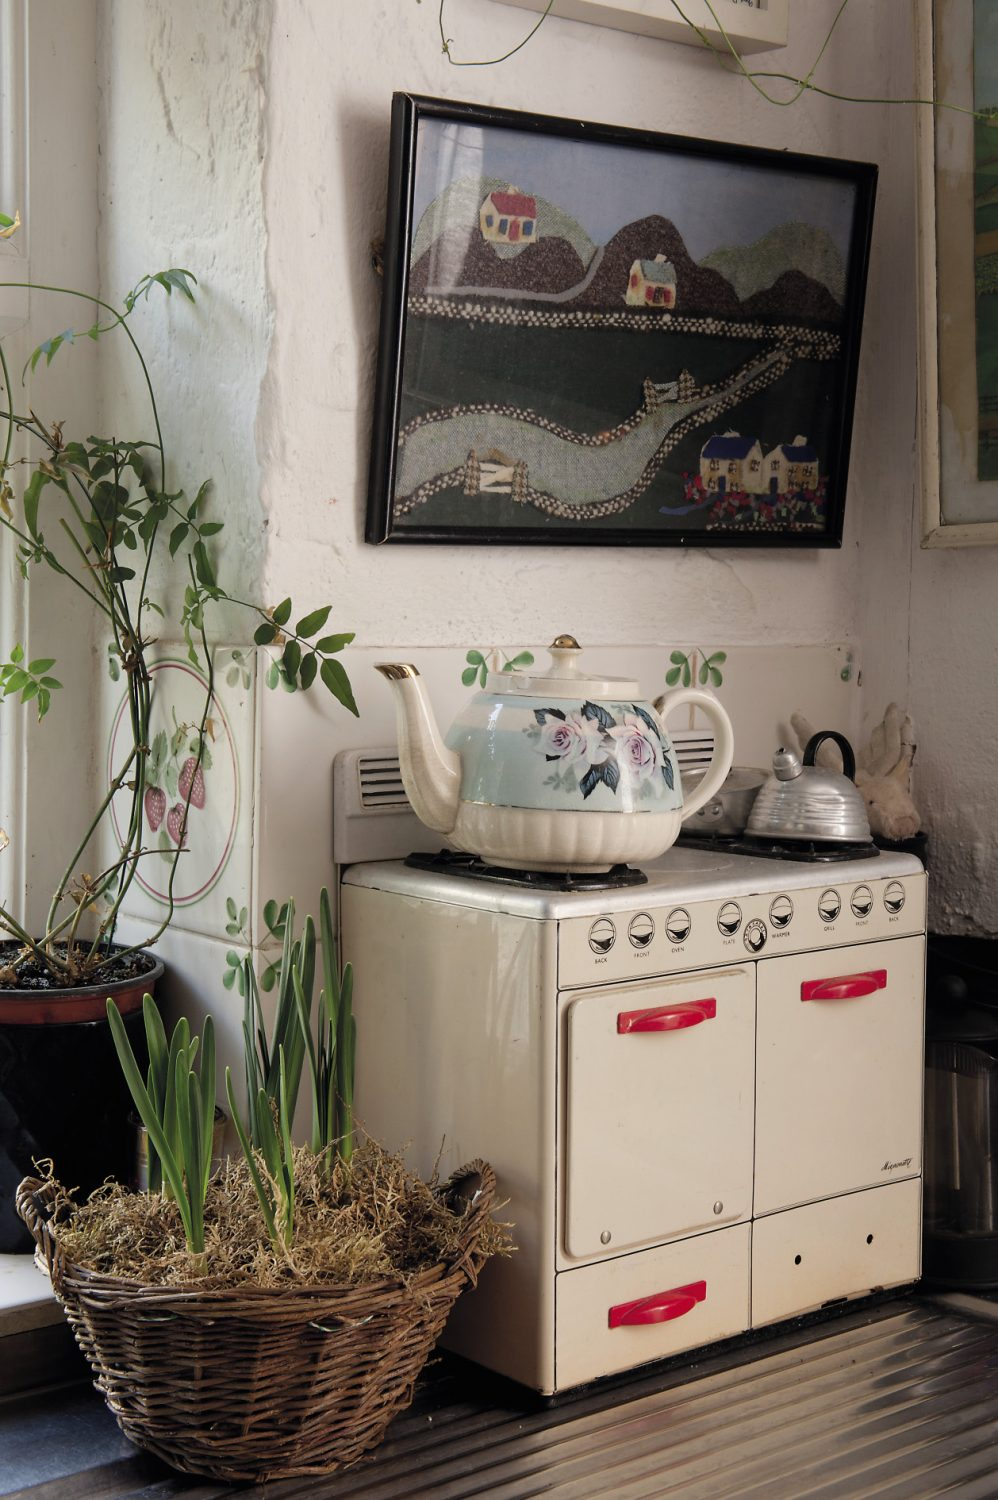 A Lilliputian 1940s enamel miniature cooker, complete with tiny baking sheets and kettle, is tucked into one corner